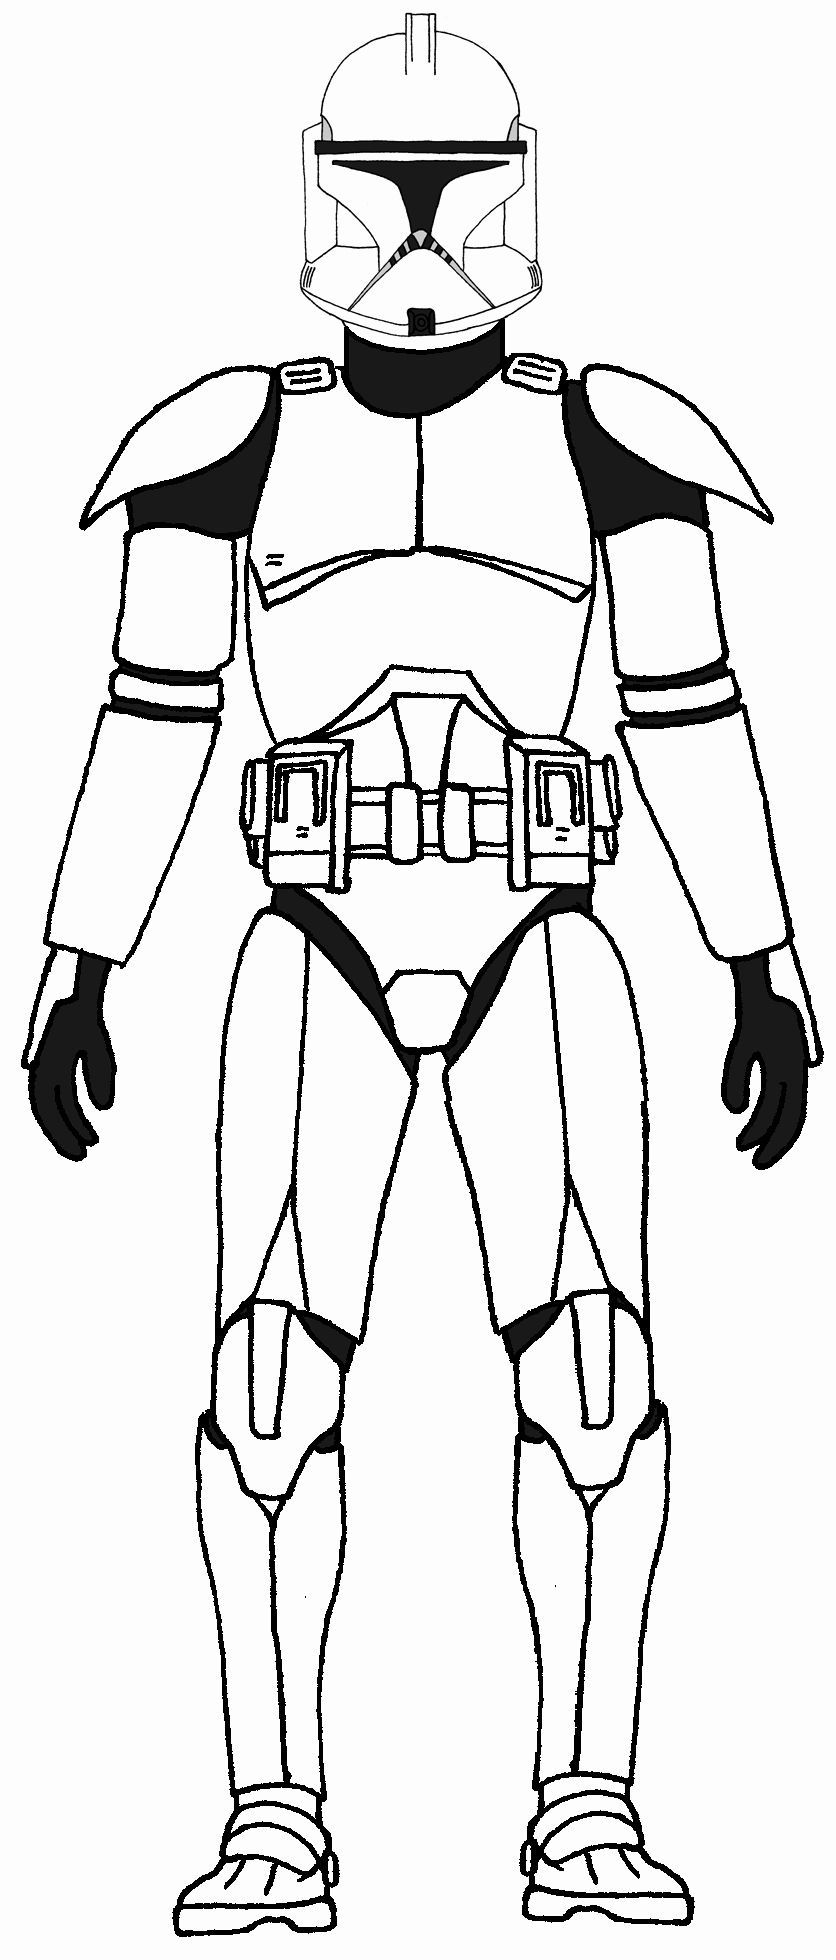 Clone Trooper Coloring Page Beautiful M Phase 2 Clone Trooper Coloring Pages Coloring Pages Star Wars Clone Wars Star Wars Pictures Star Wars Trooper In 2021